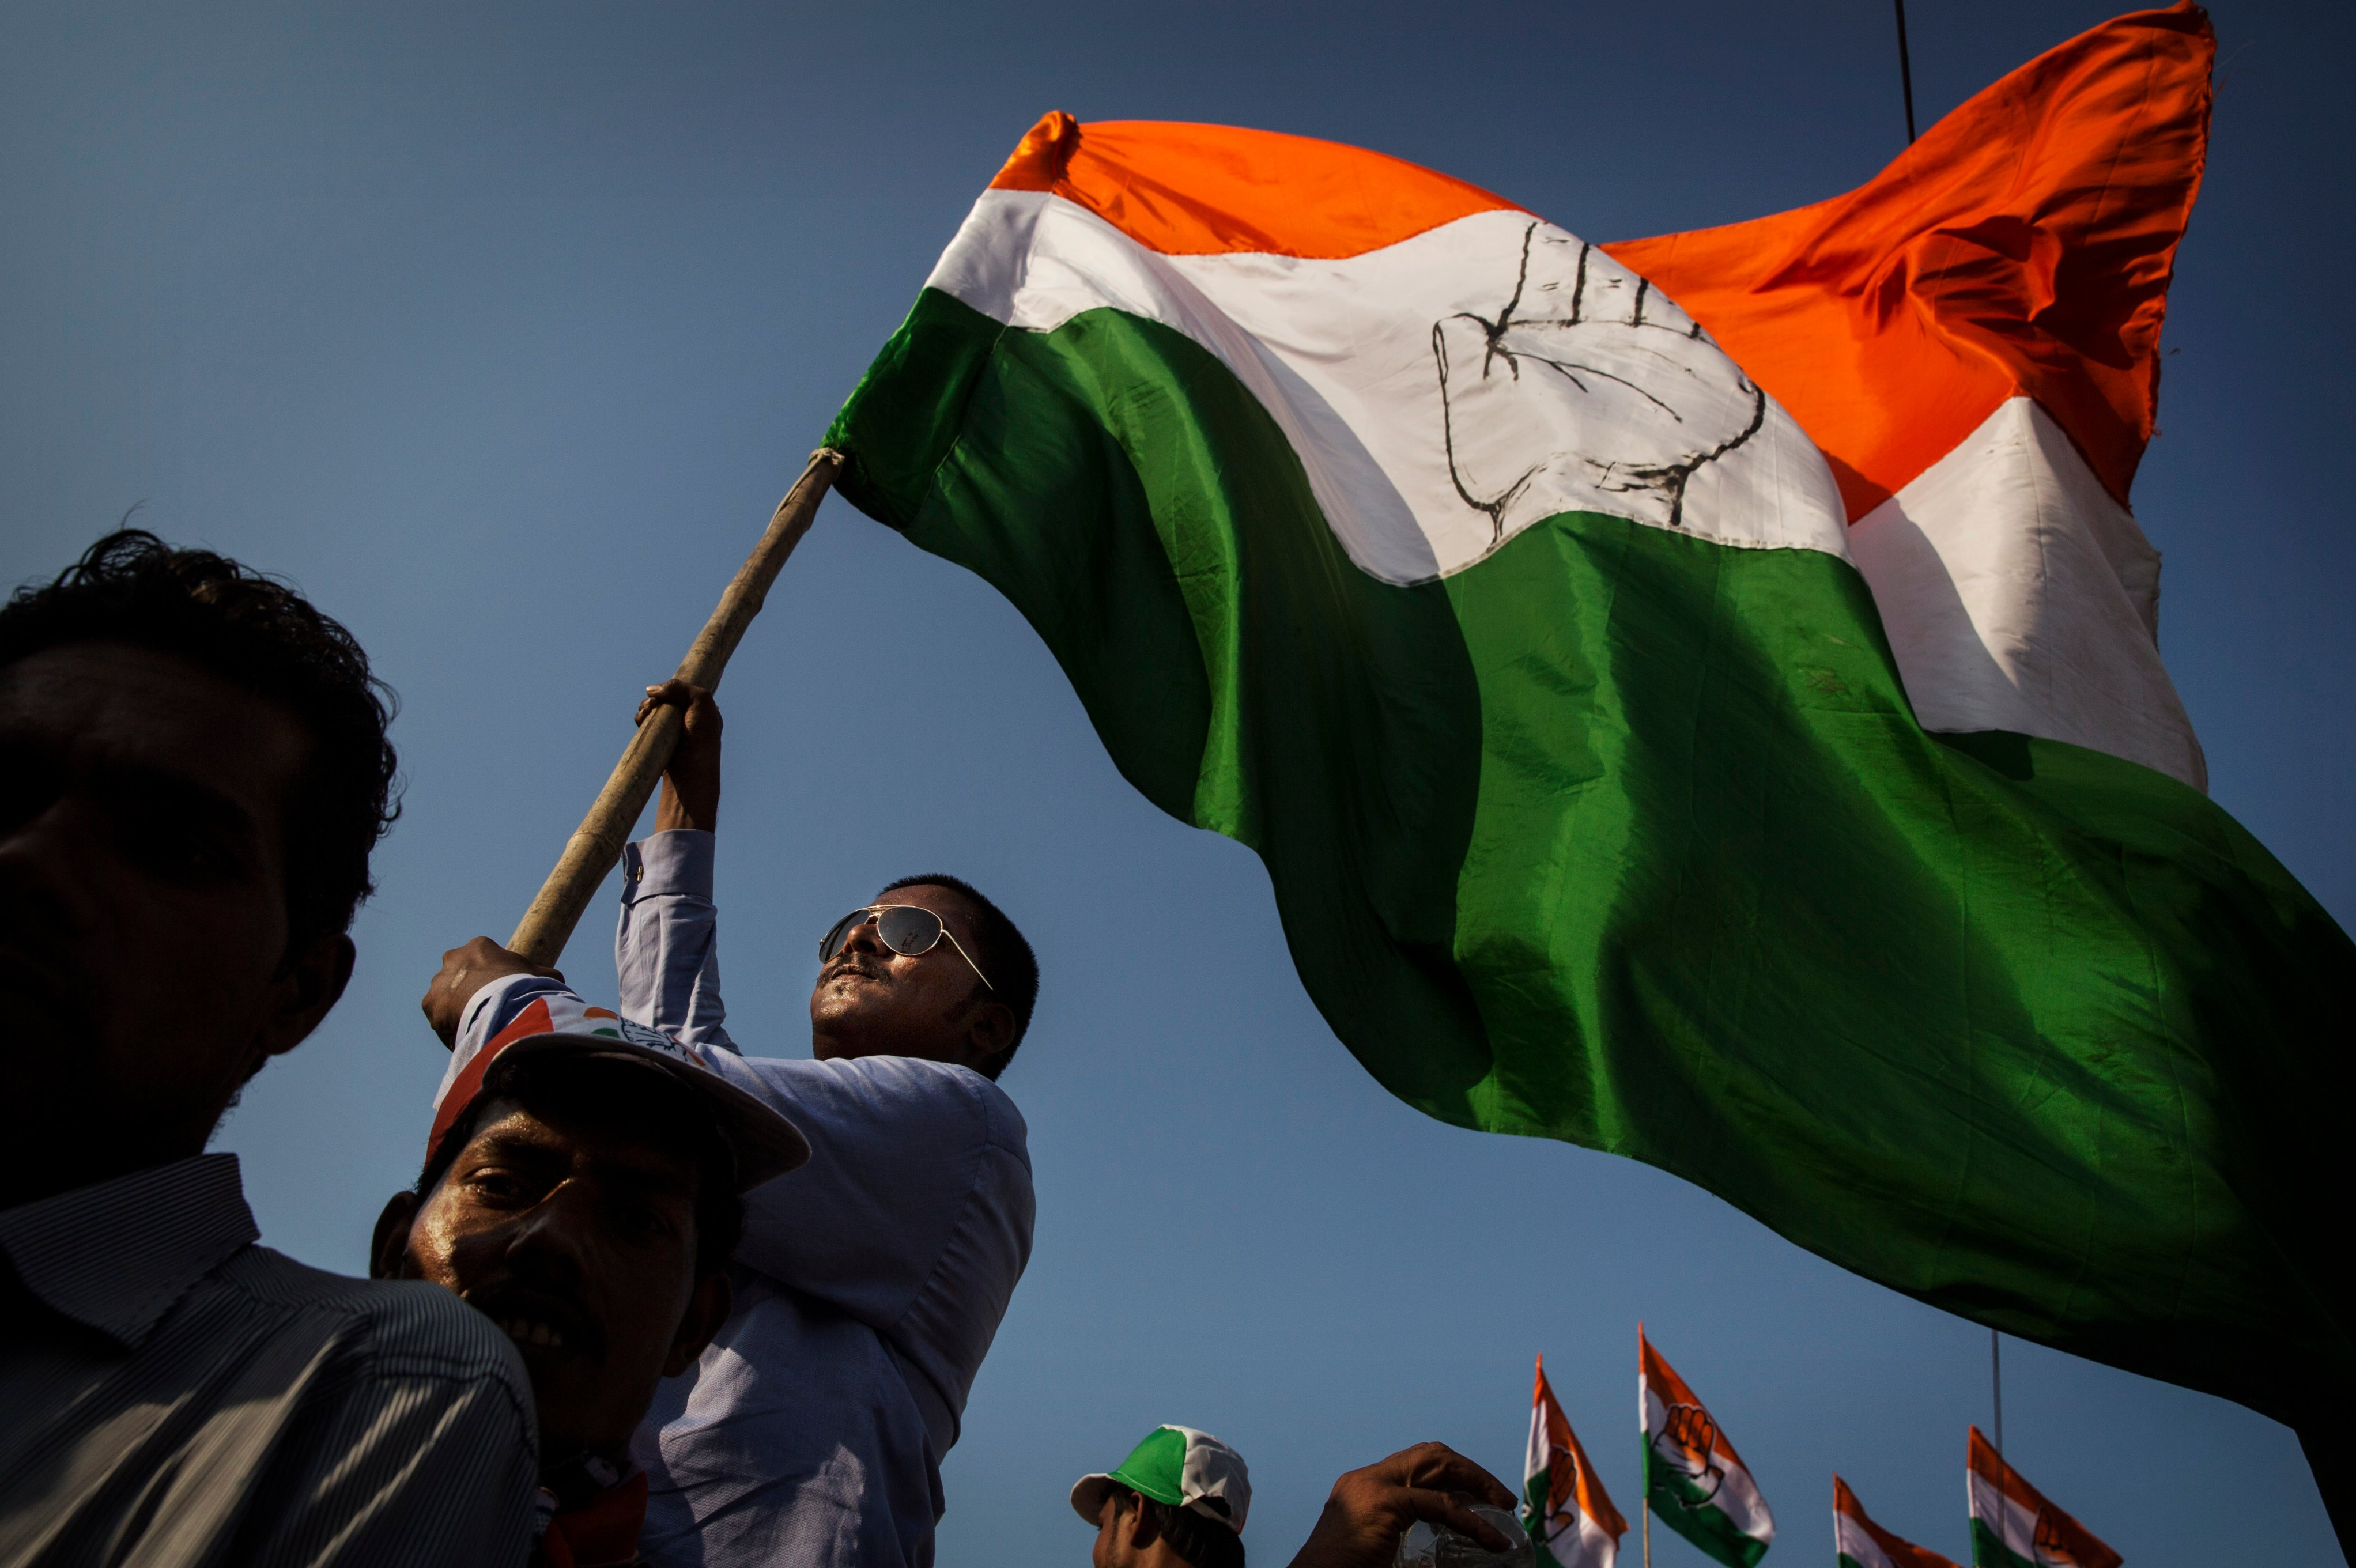 Don't mix politics and security to leaders: Cong in RS